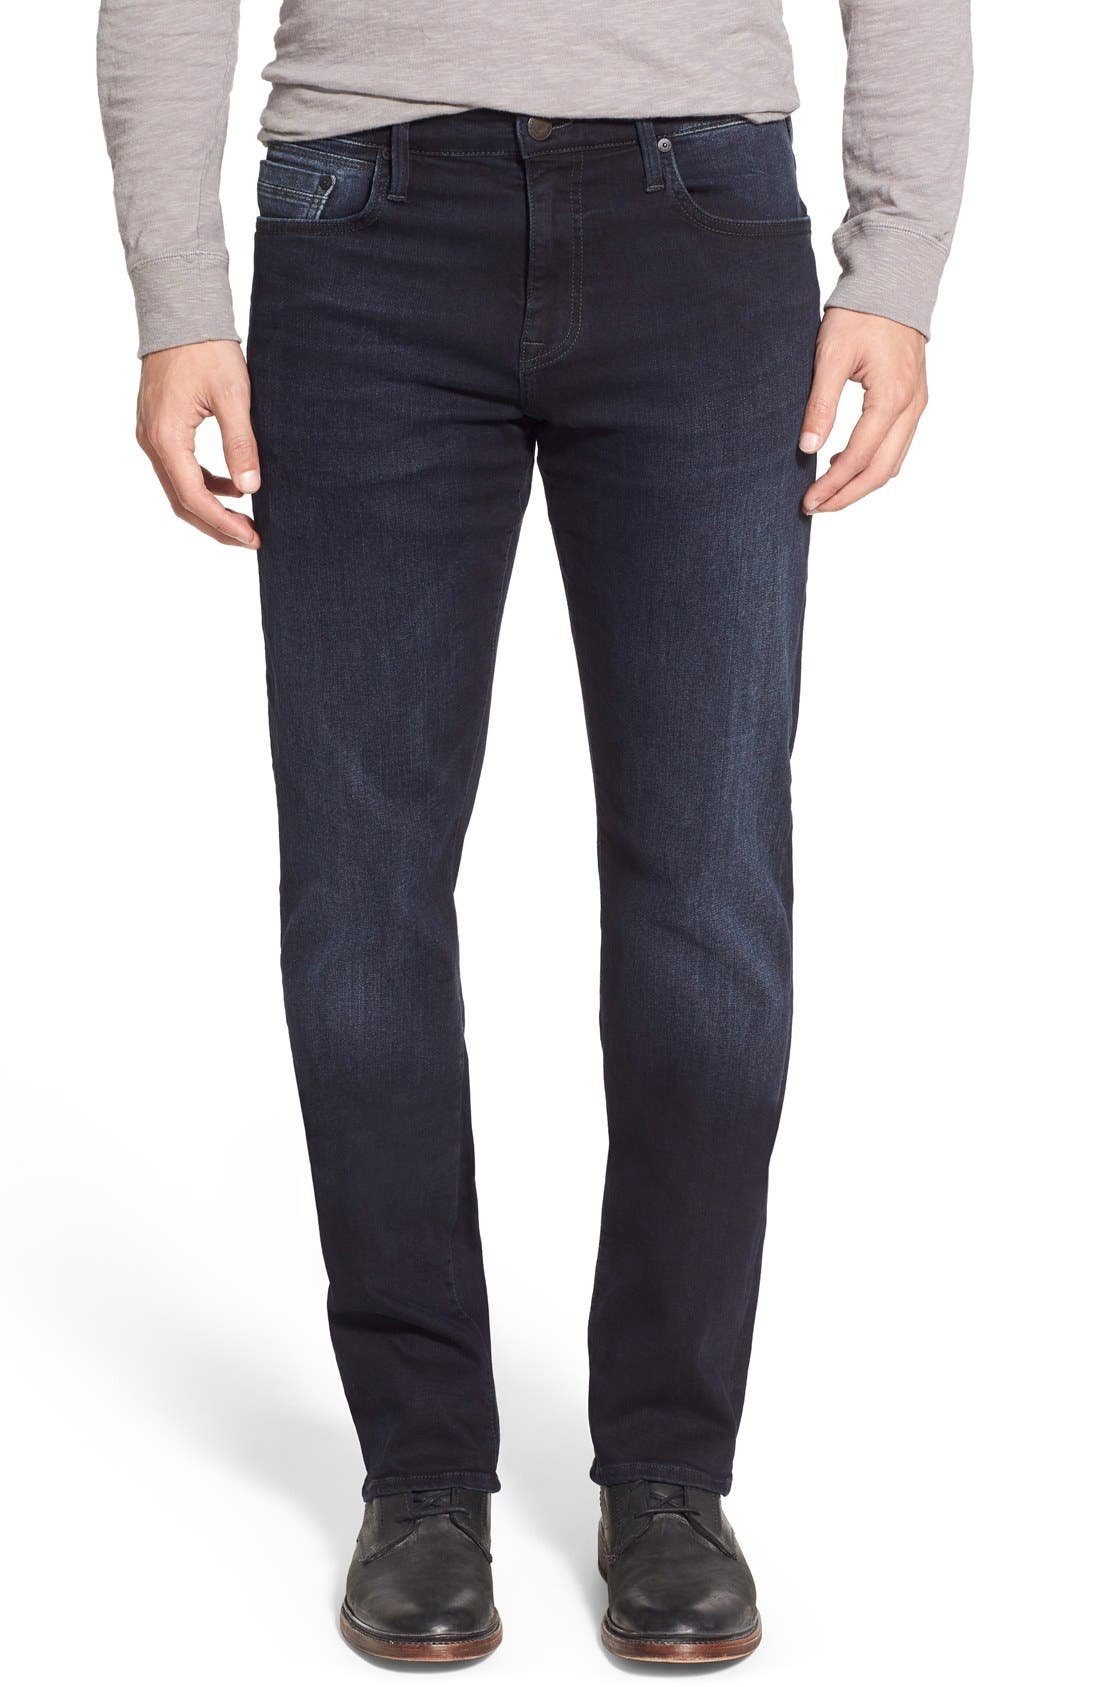 Matt Relaxed Fit Jeans,                             Main thumbnail 1, color,                             Ink Williamsburg